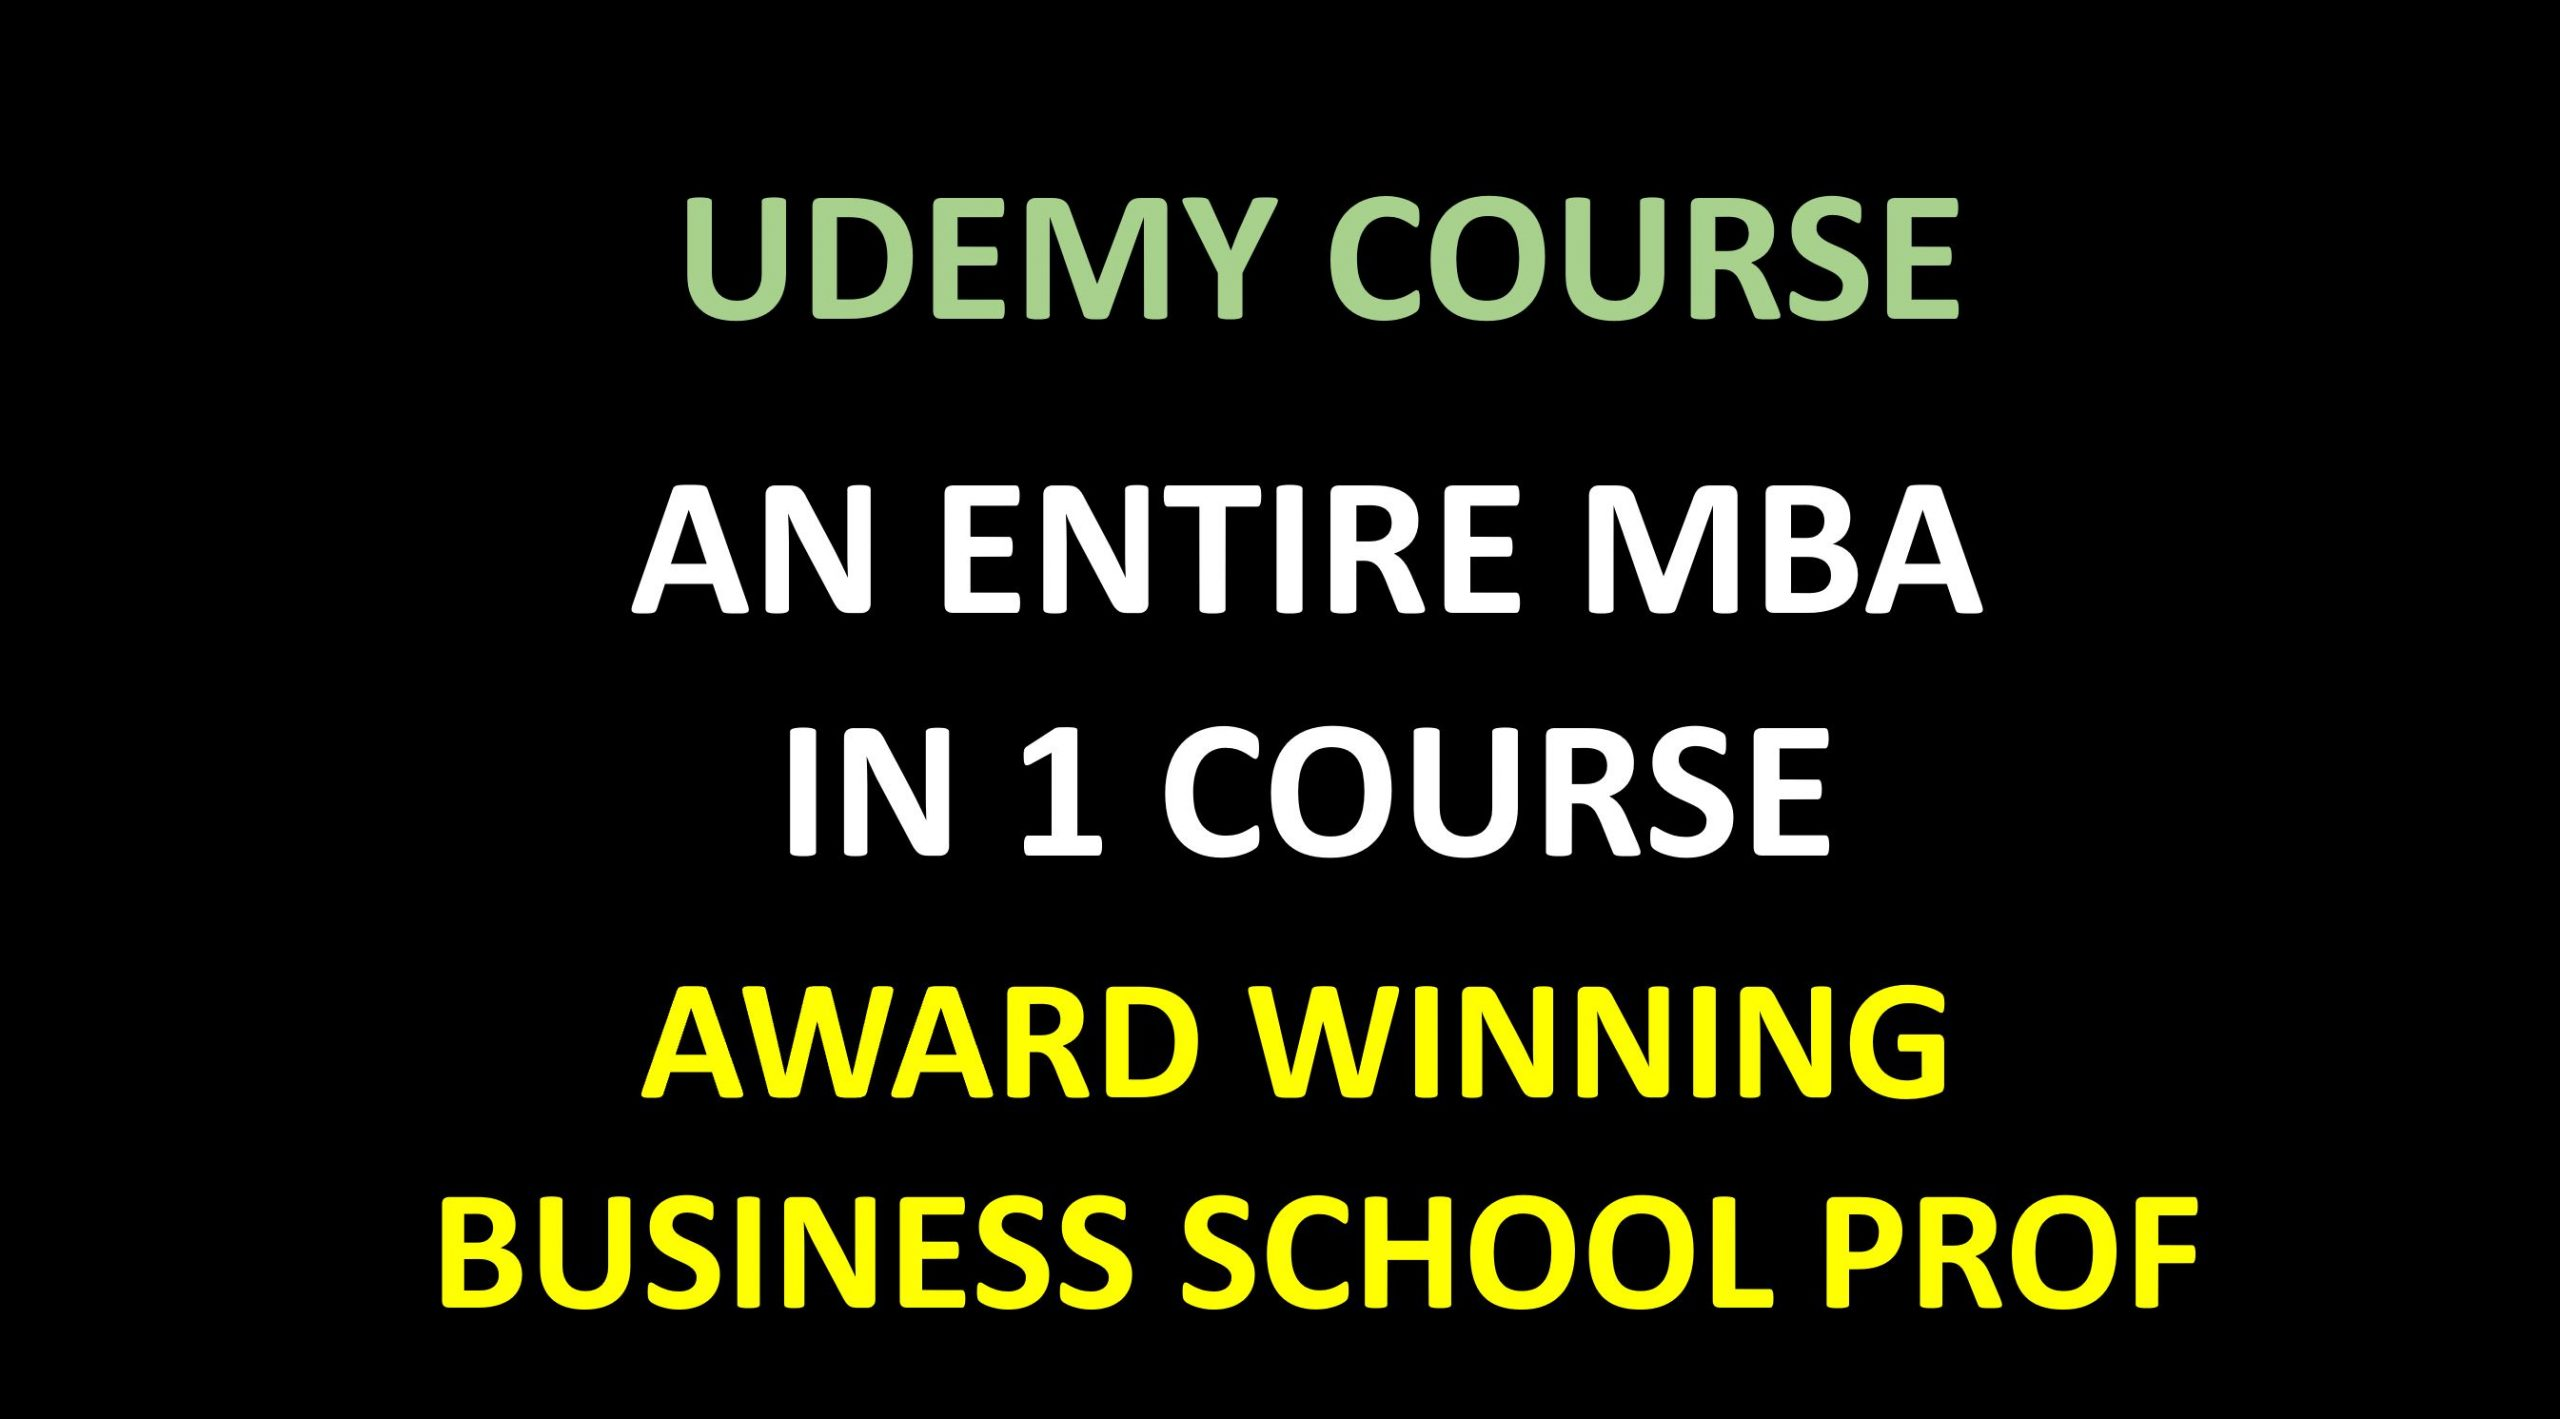 An Entire MBA in 1 Course - Award Winning Business School Prof